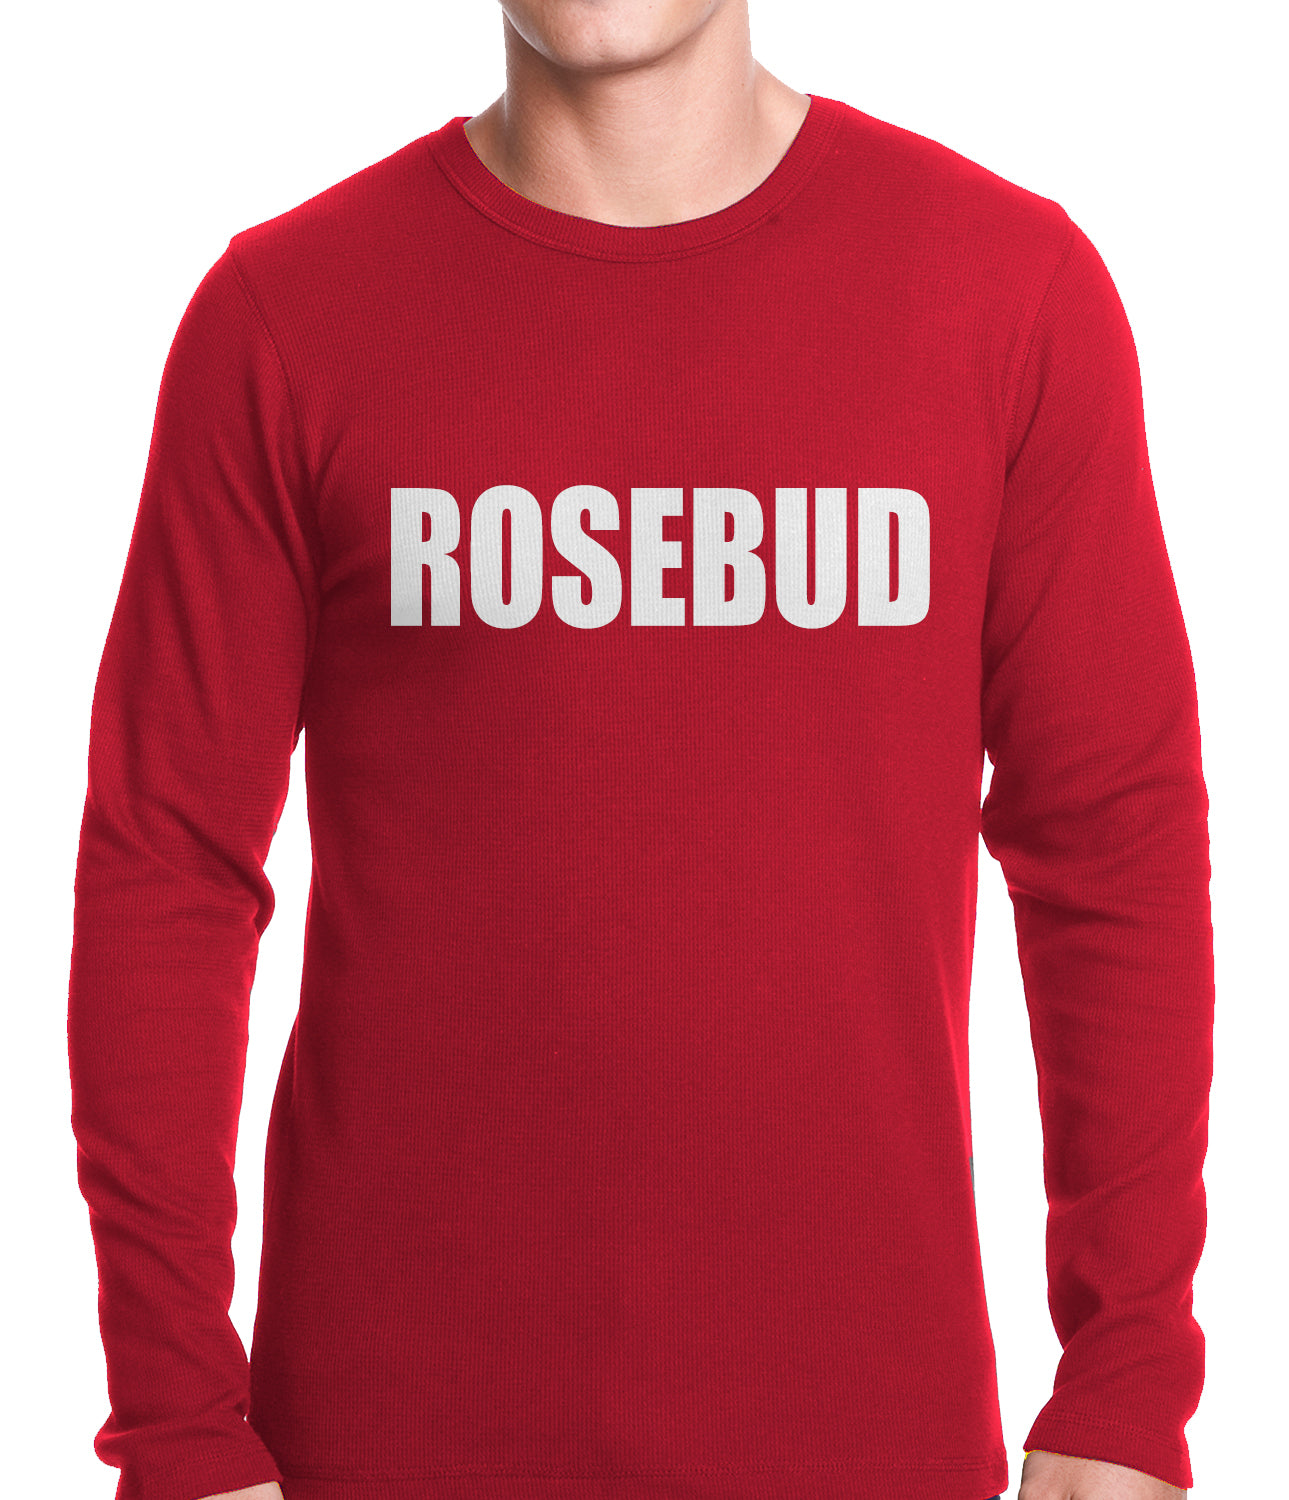 Rosebud Thermal Shirt